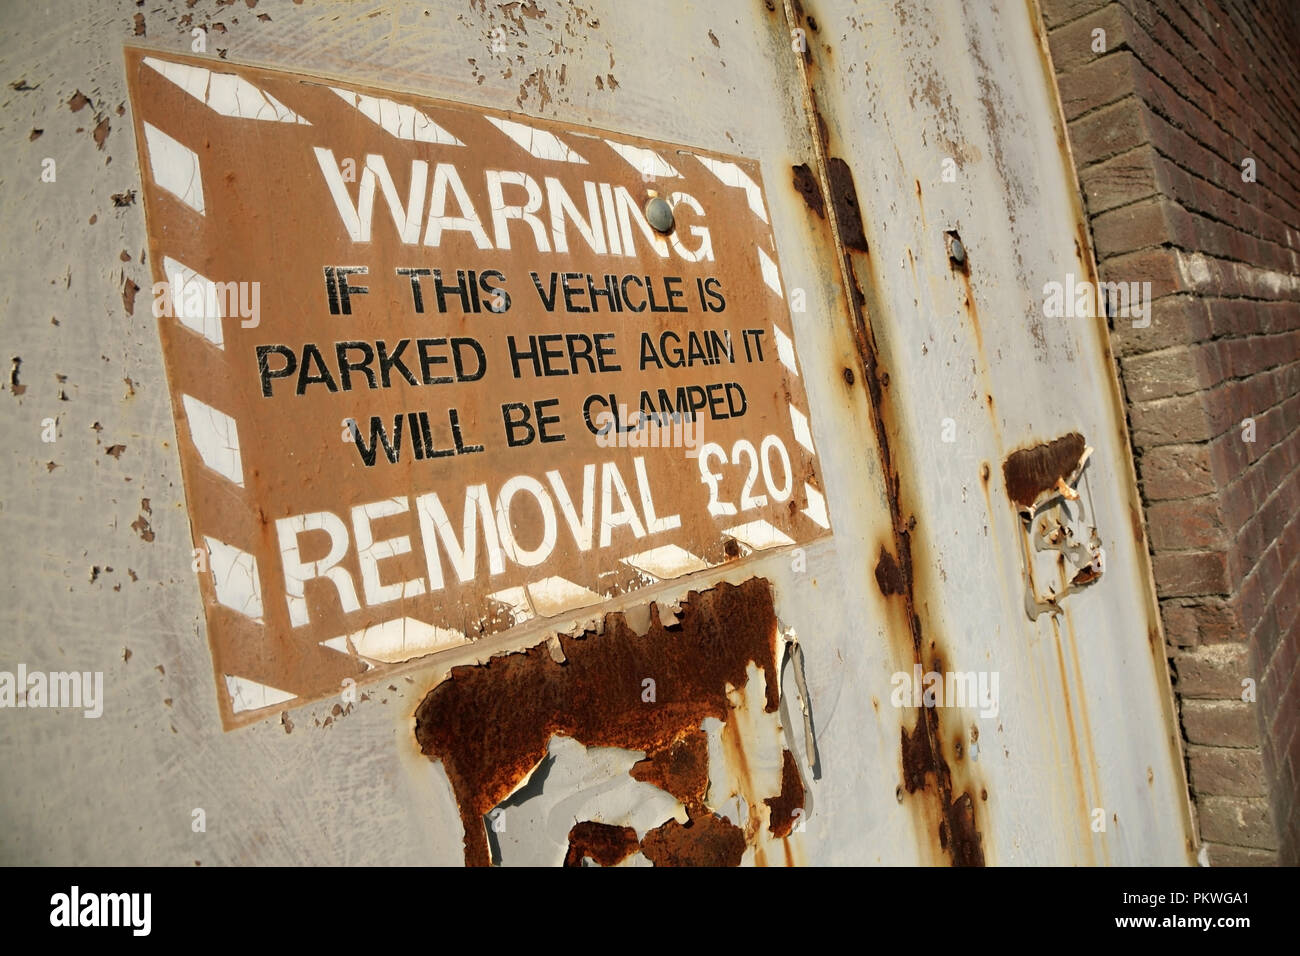 Old sign warning that parked vehicles will be clamped. - Stock Image